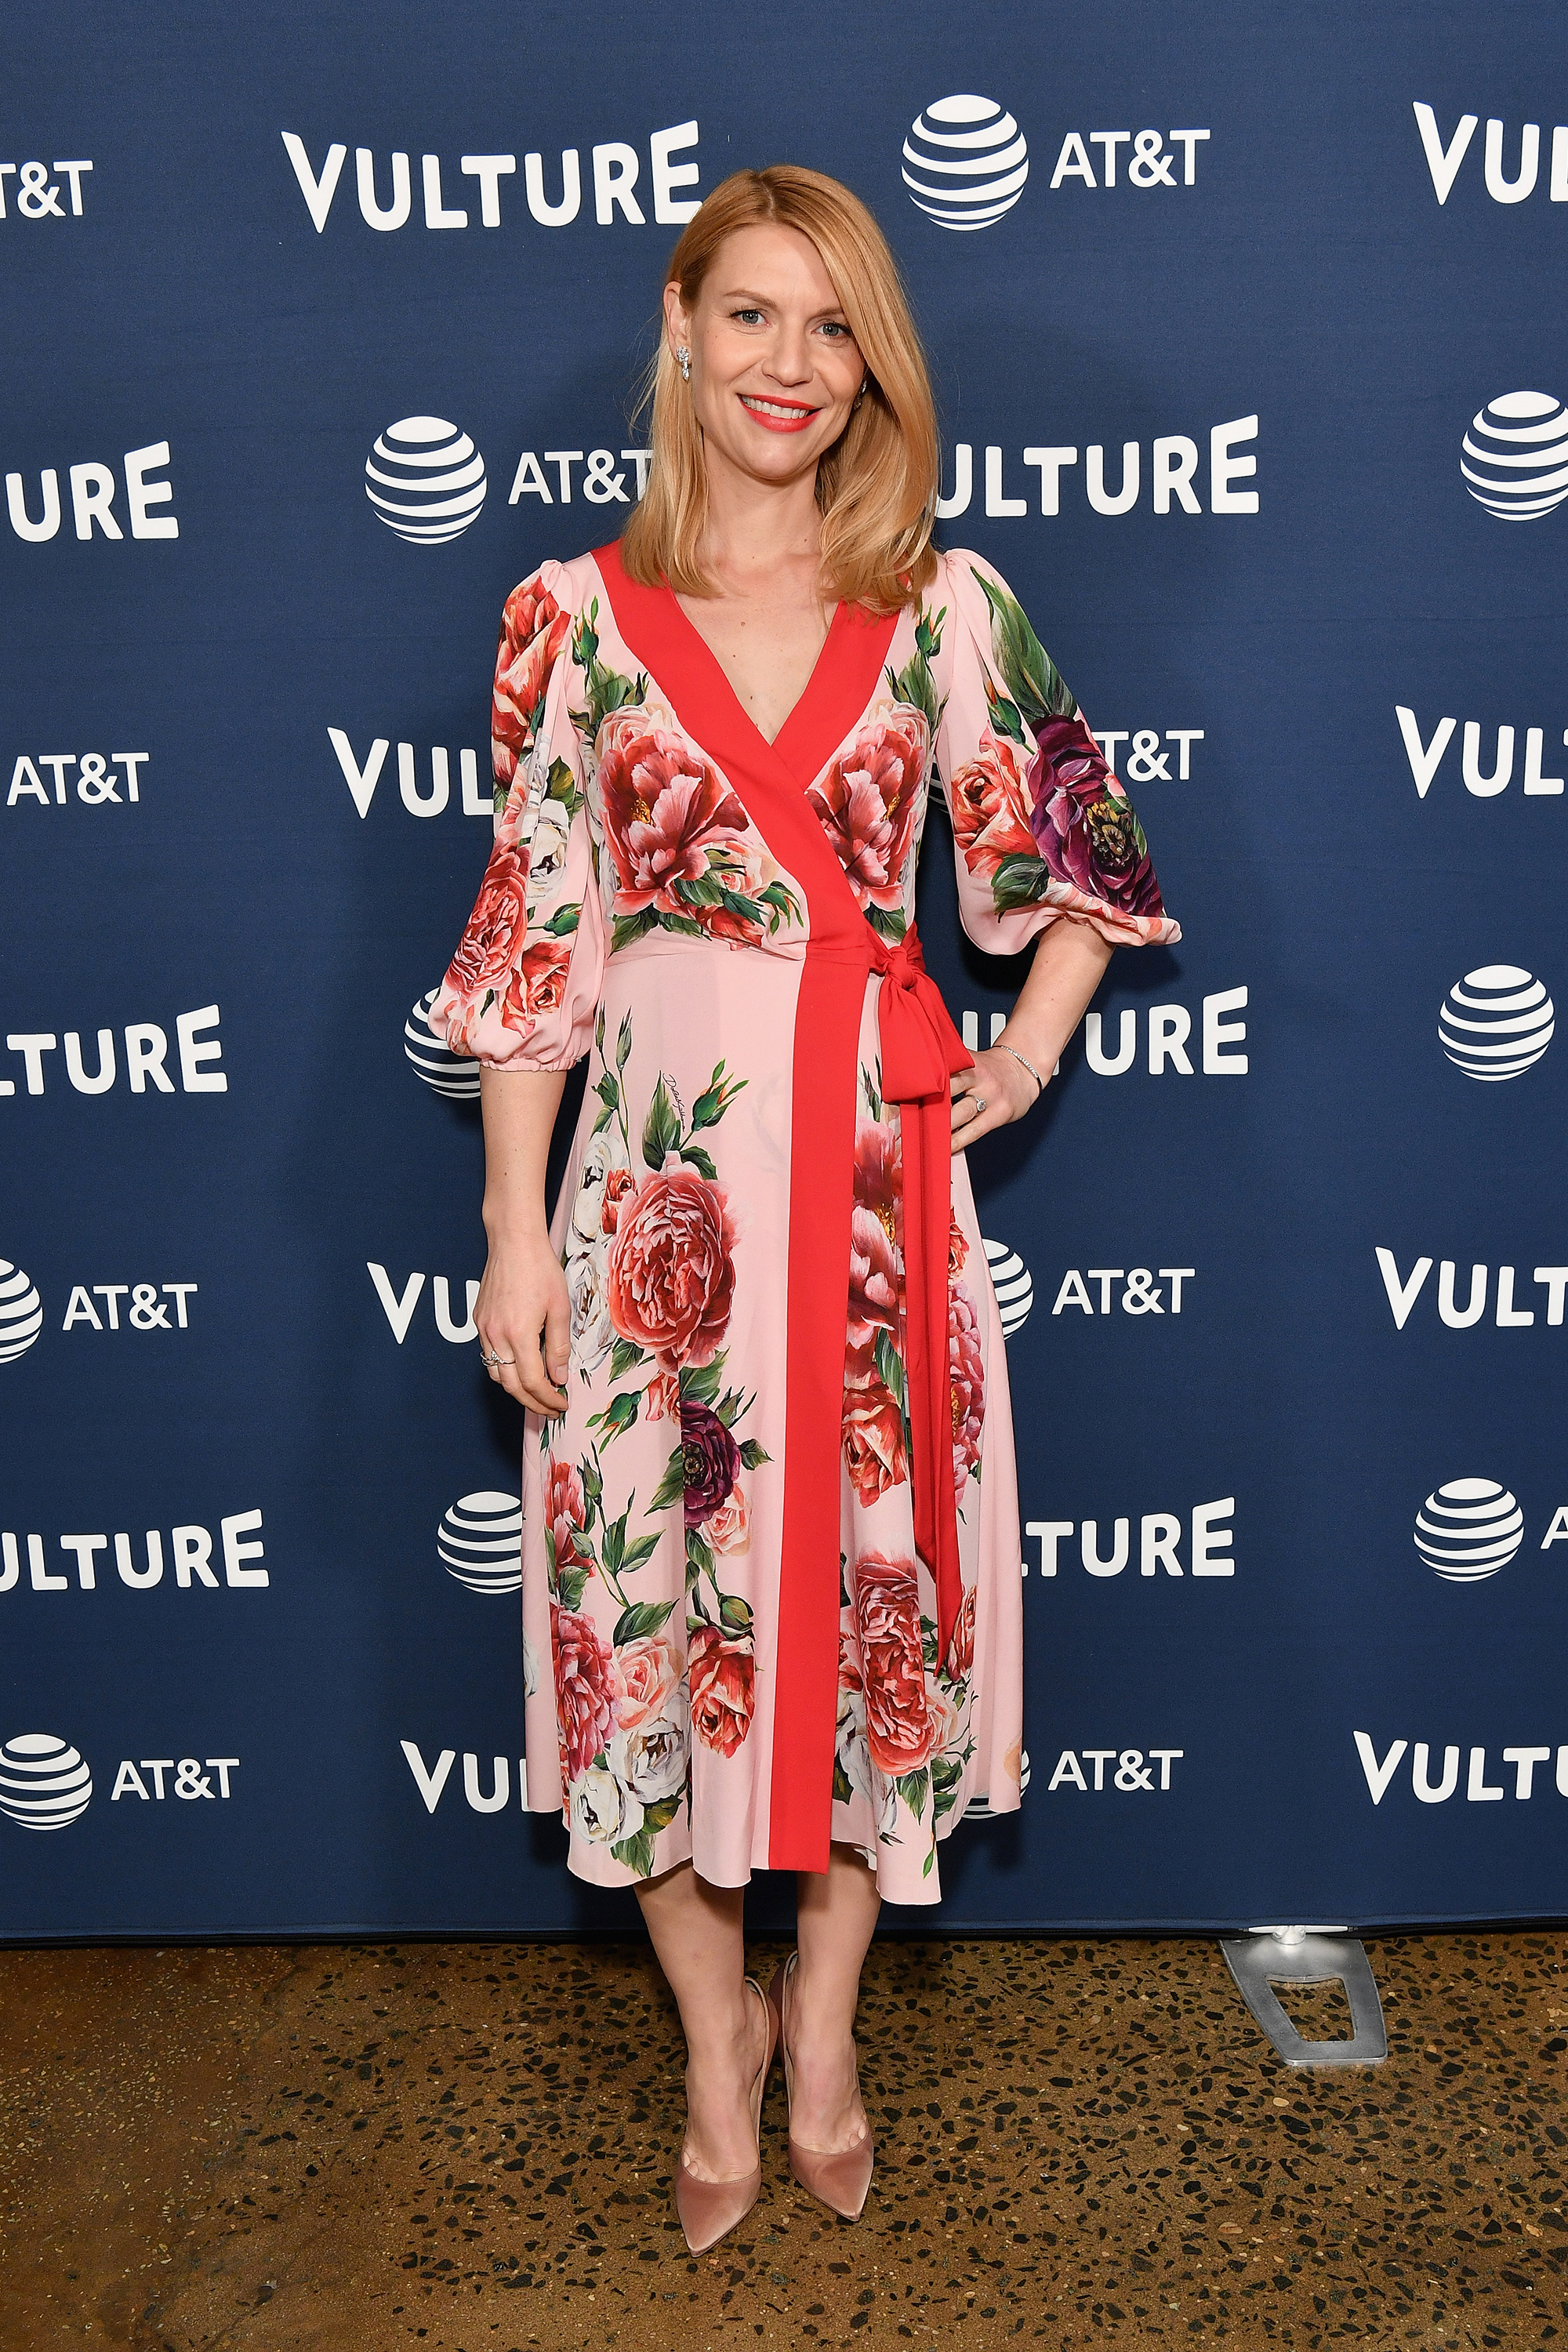 Claire Danes attends Day Two of the Vulture Festival Presented By AT&T at Milk Studios in New York City on May 20, 2018.